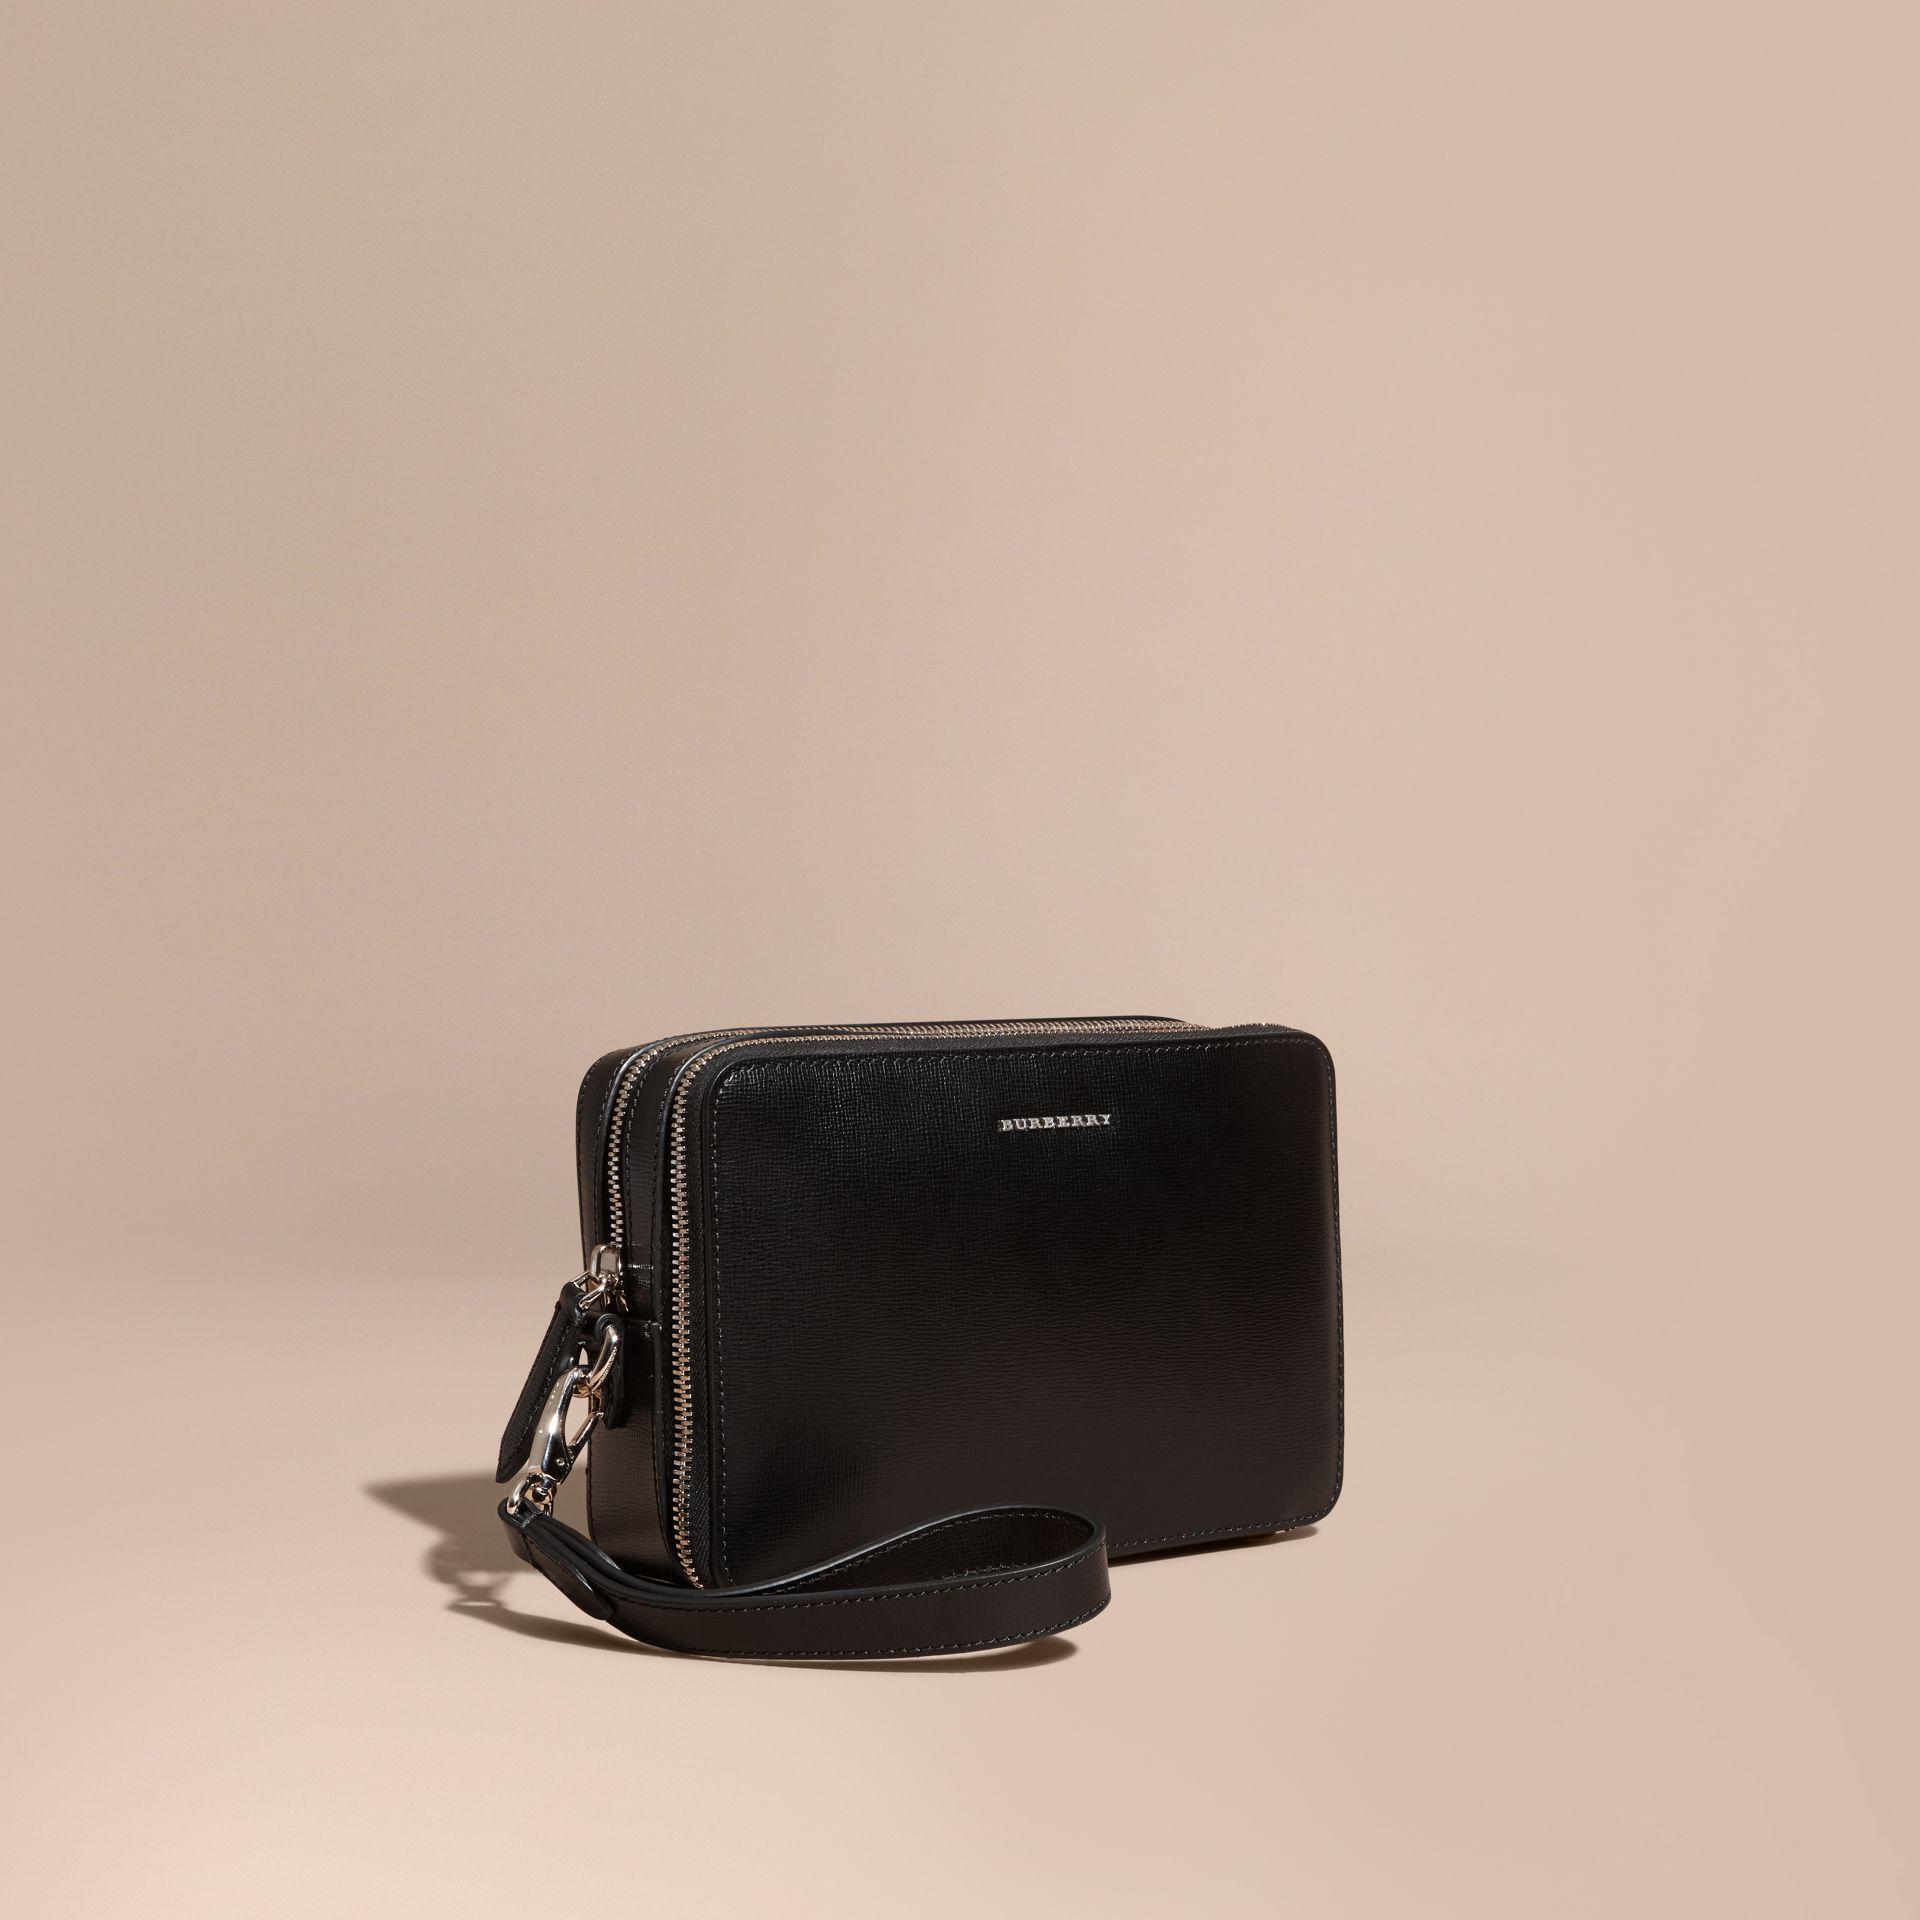 Black London Leather Pouch Black - gallery image 1